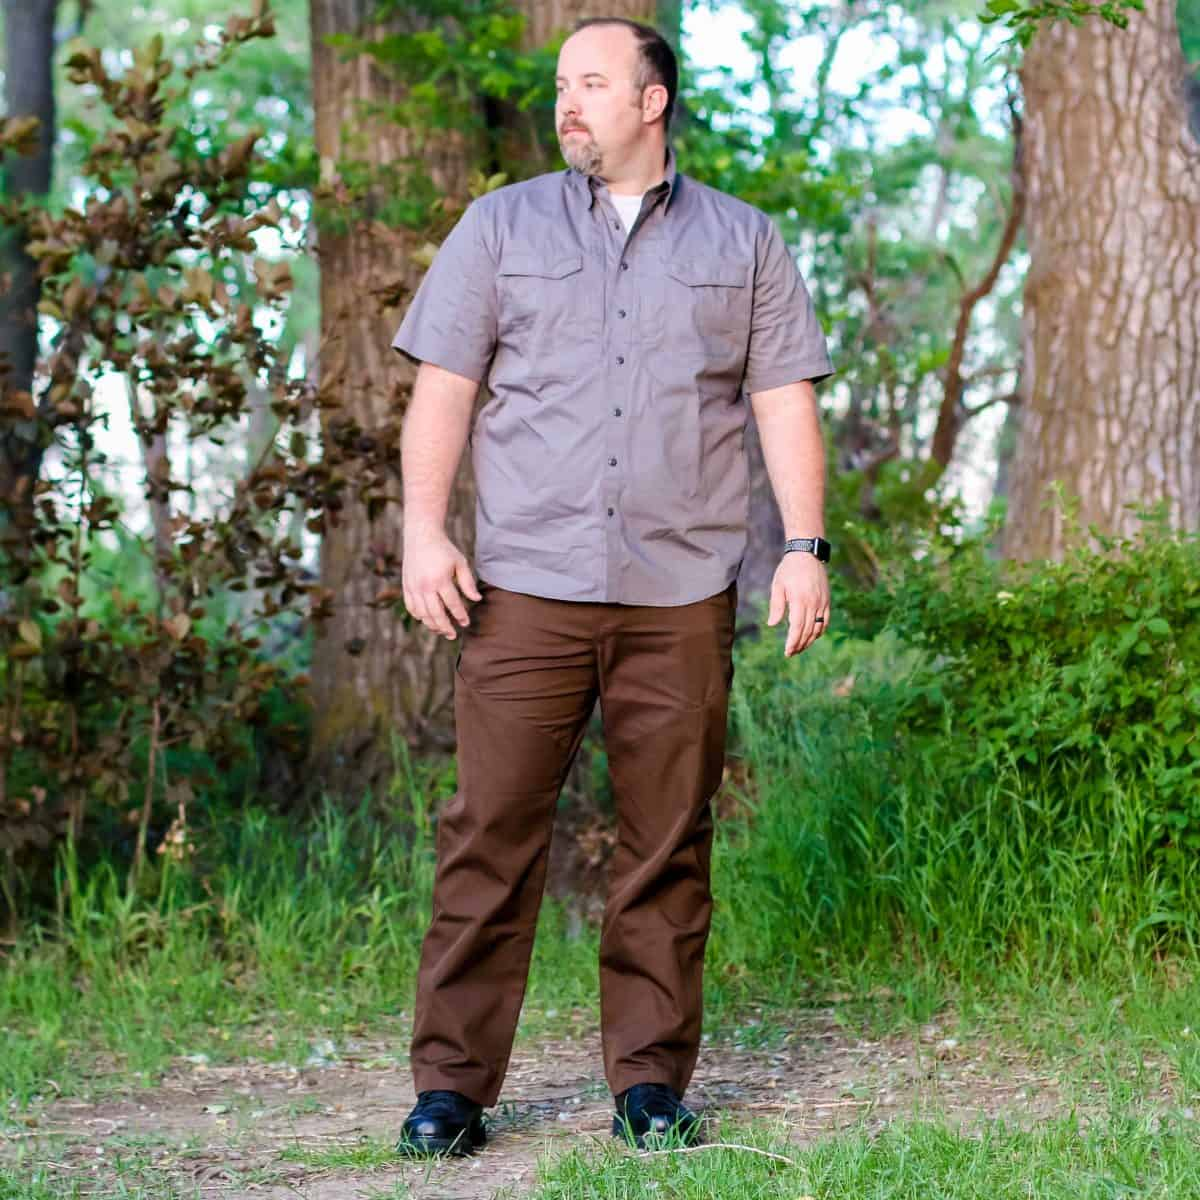 Men's Tactical Clothing For Everyday Wear